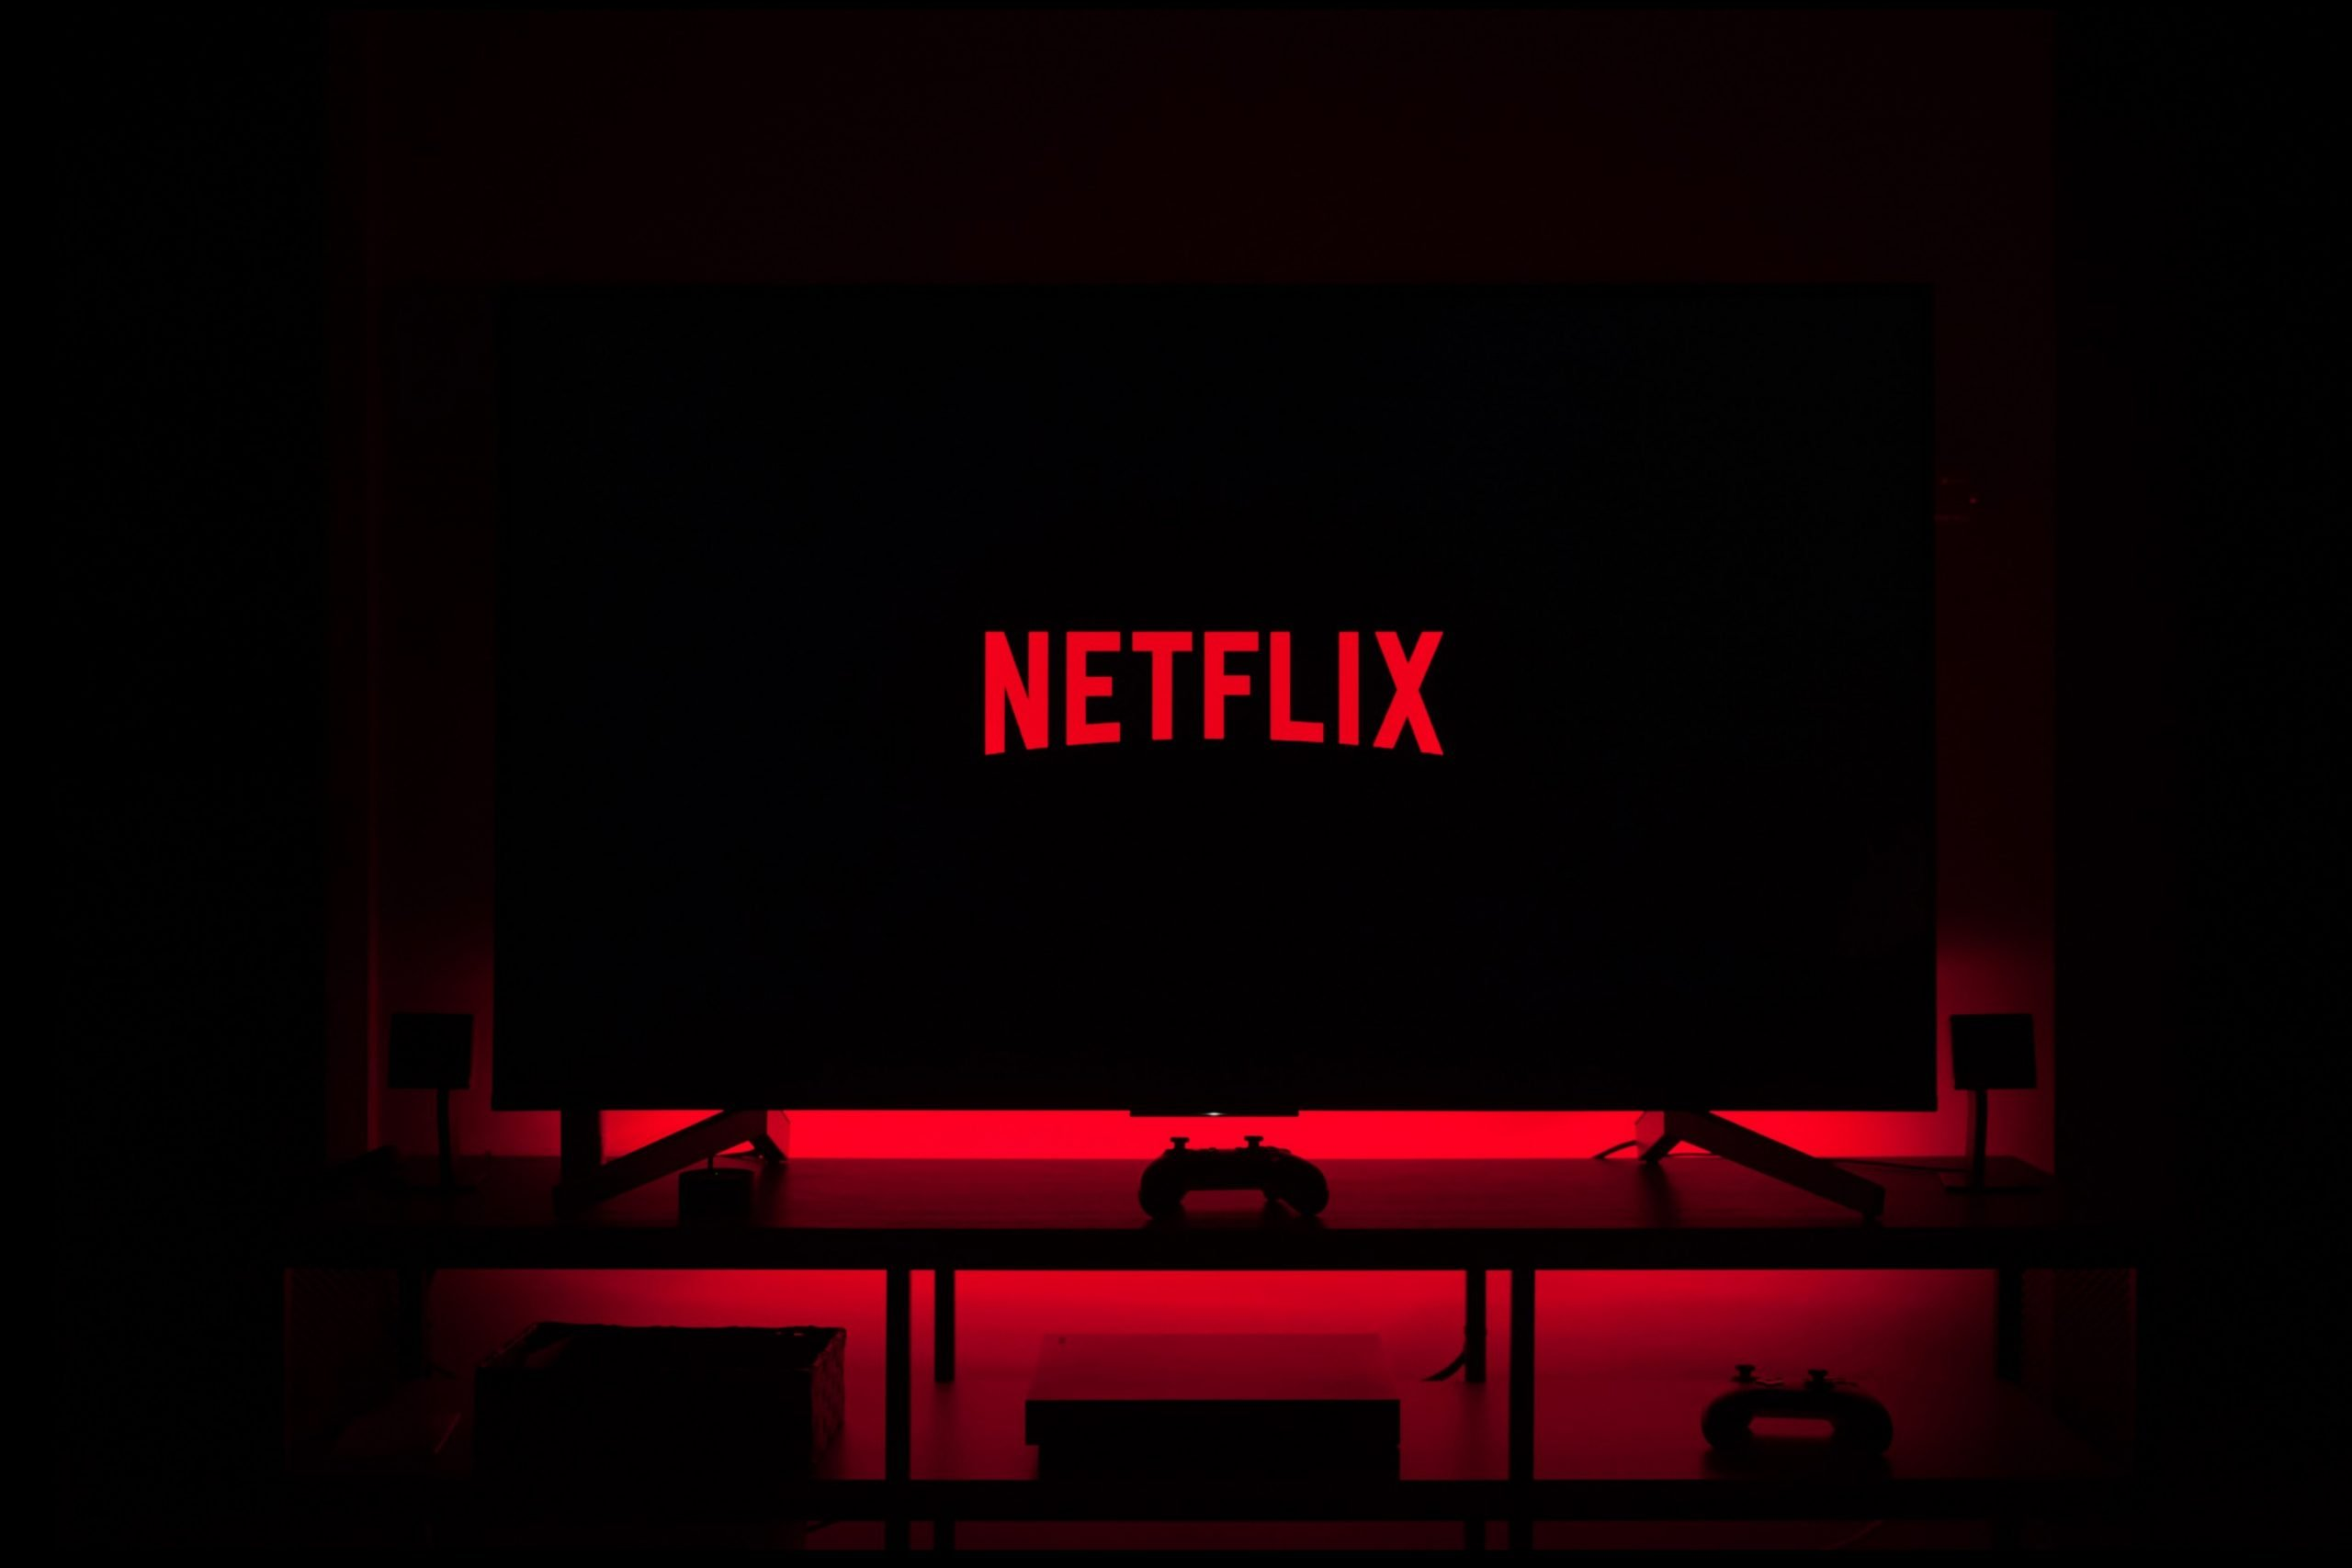 Netflix Confirmed Expanding into Gaming Space Based on its Vast Content